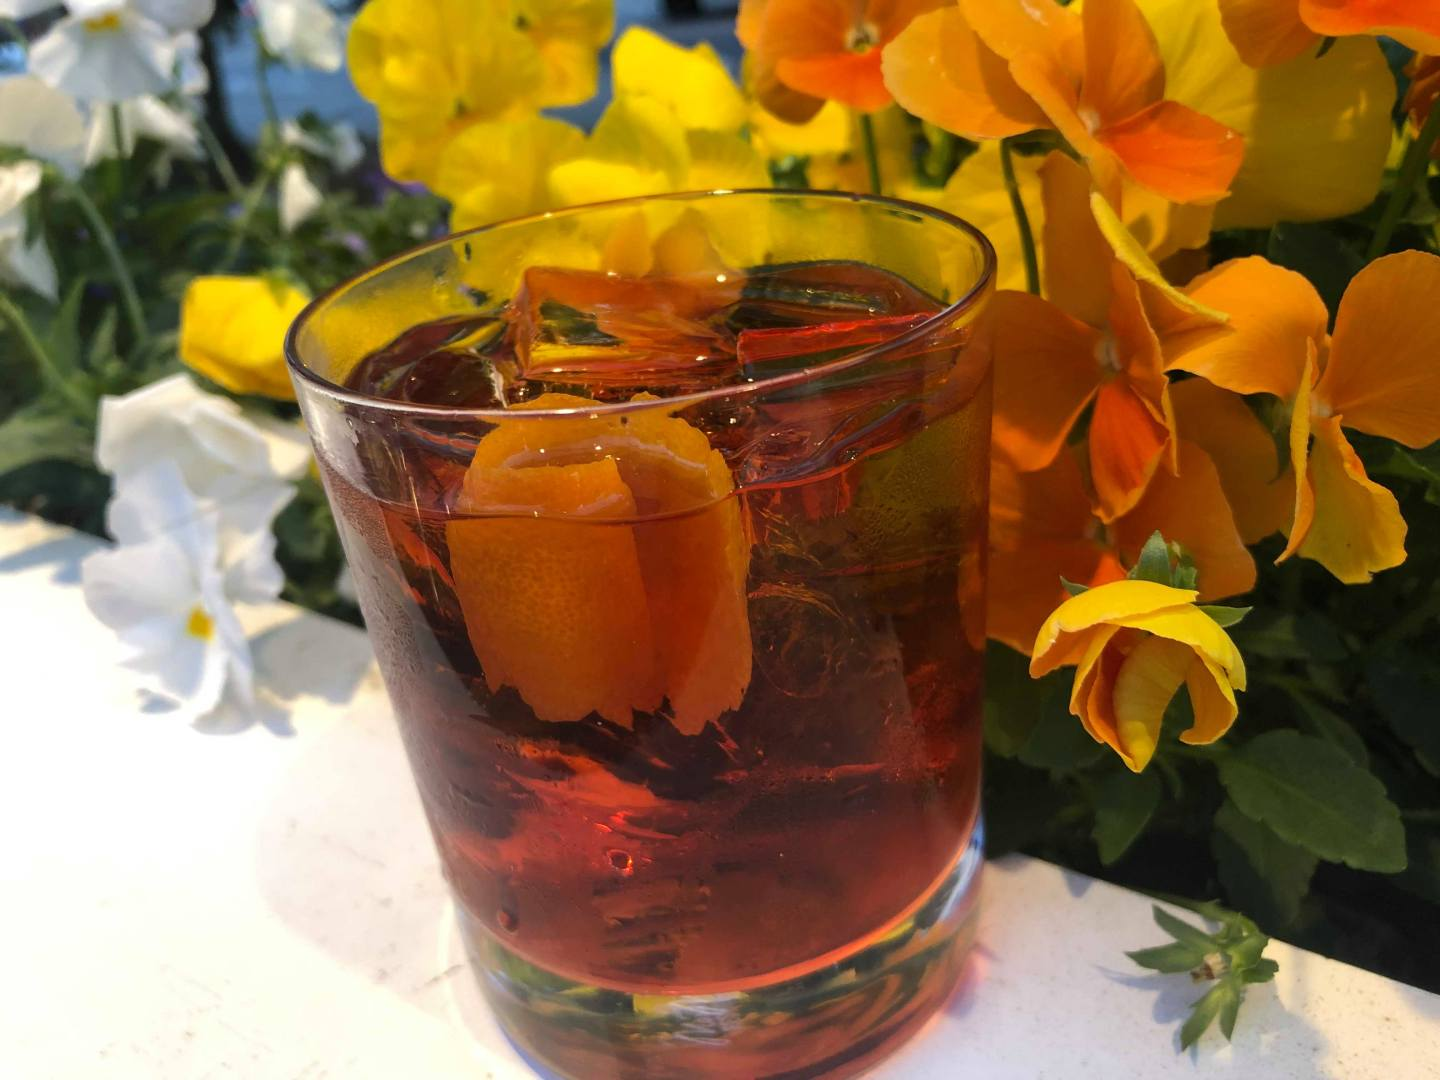 58949955_2614780031929718_8598129436845408256_n-1440x1080 Three Southern Barkeeps (Re)Imagine Cocktails fit for a Kentucky Derby Celebration